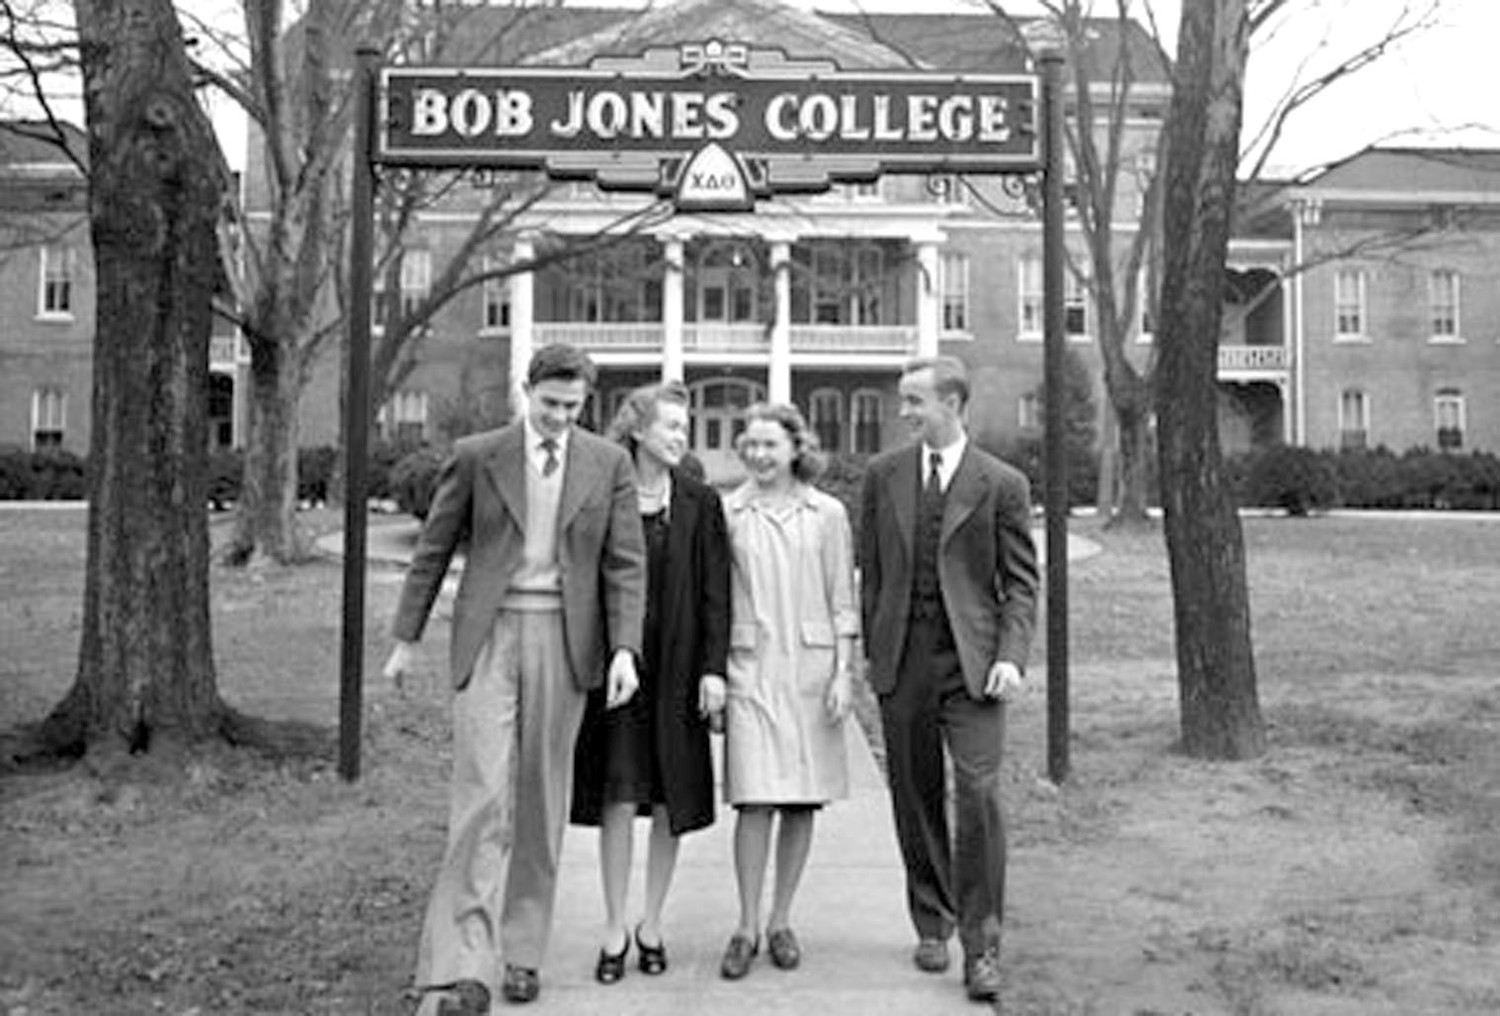 THIS IS A VIEW of students on the campus of Cleveland's Bob Jones College in the 1930s, around the time a young Billy Graham attended classes in Cleveland, before he became a man of the cloth. The college moved to Greenville, S.C., following World War II, and the local campus is now Lee University.